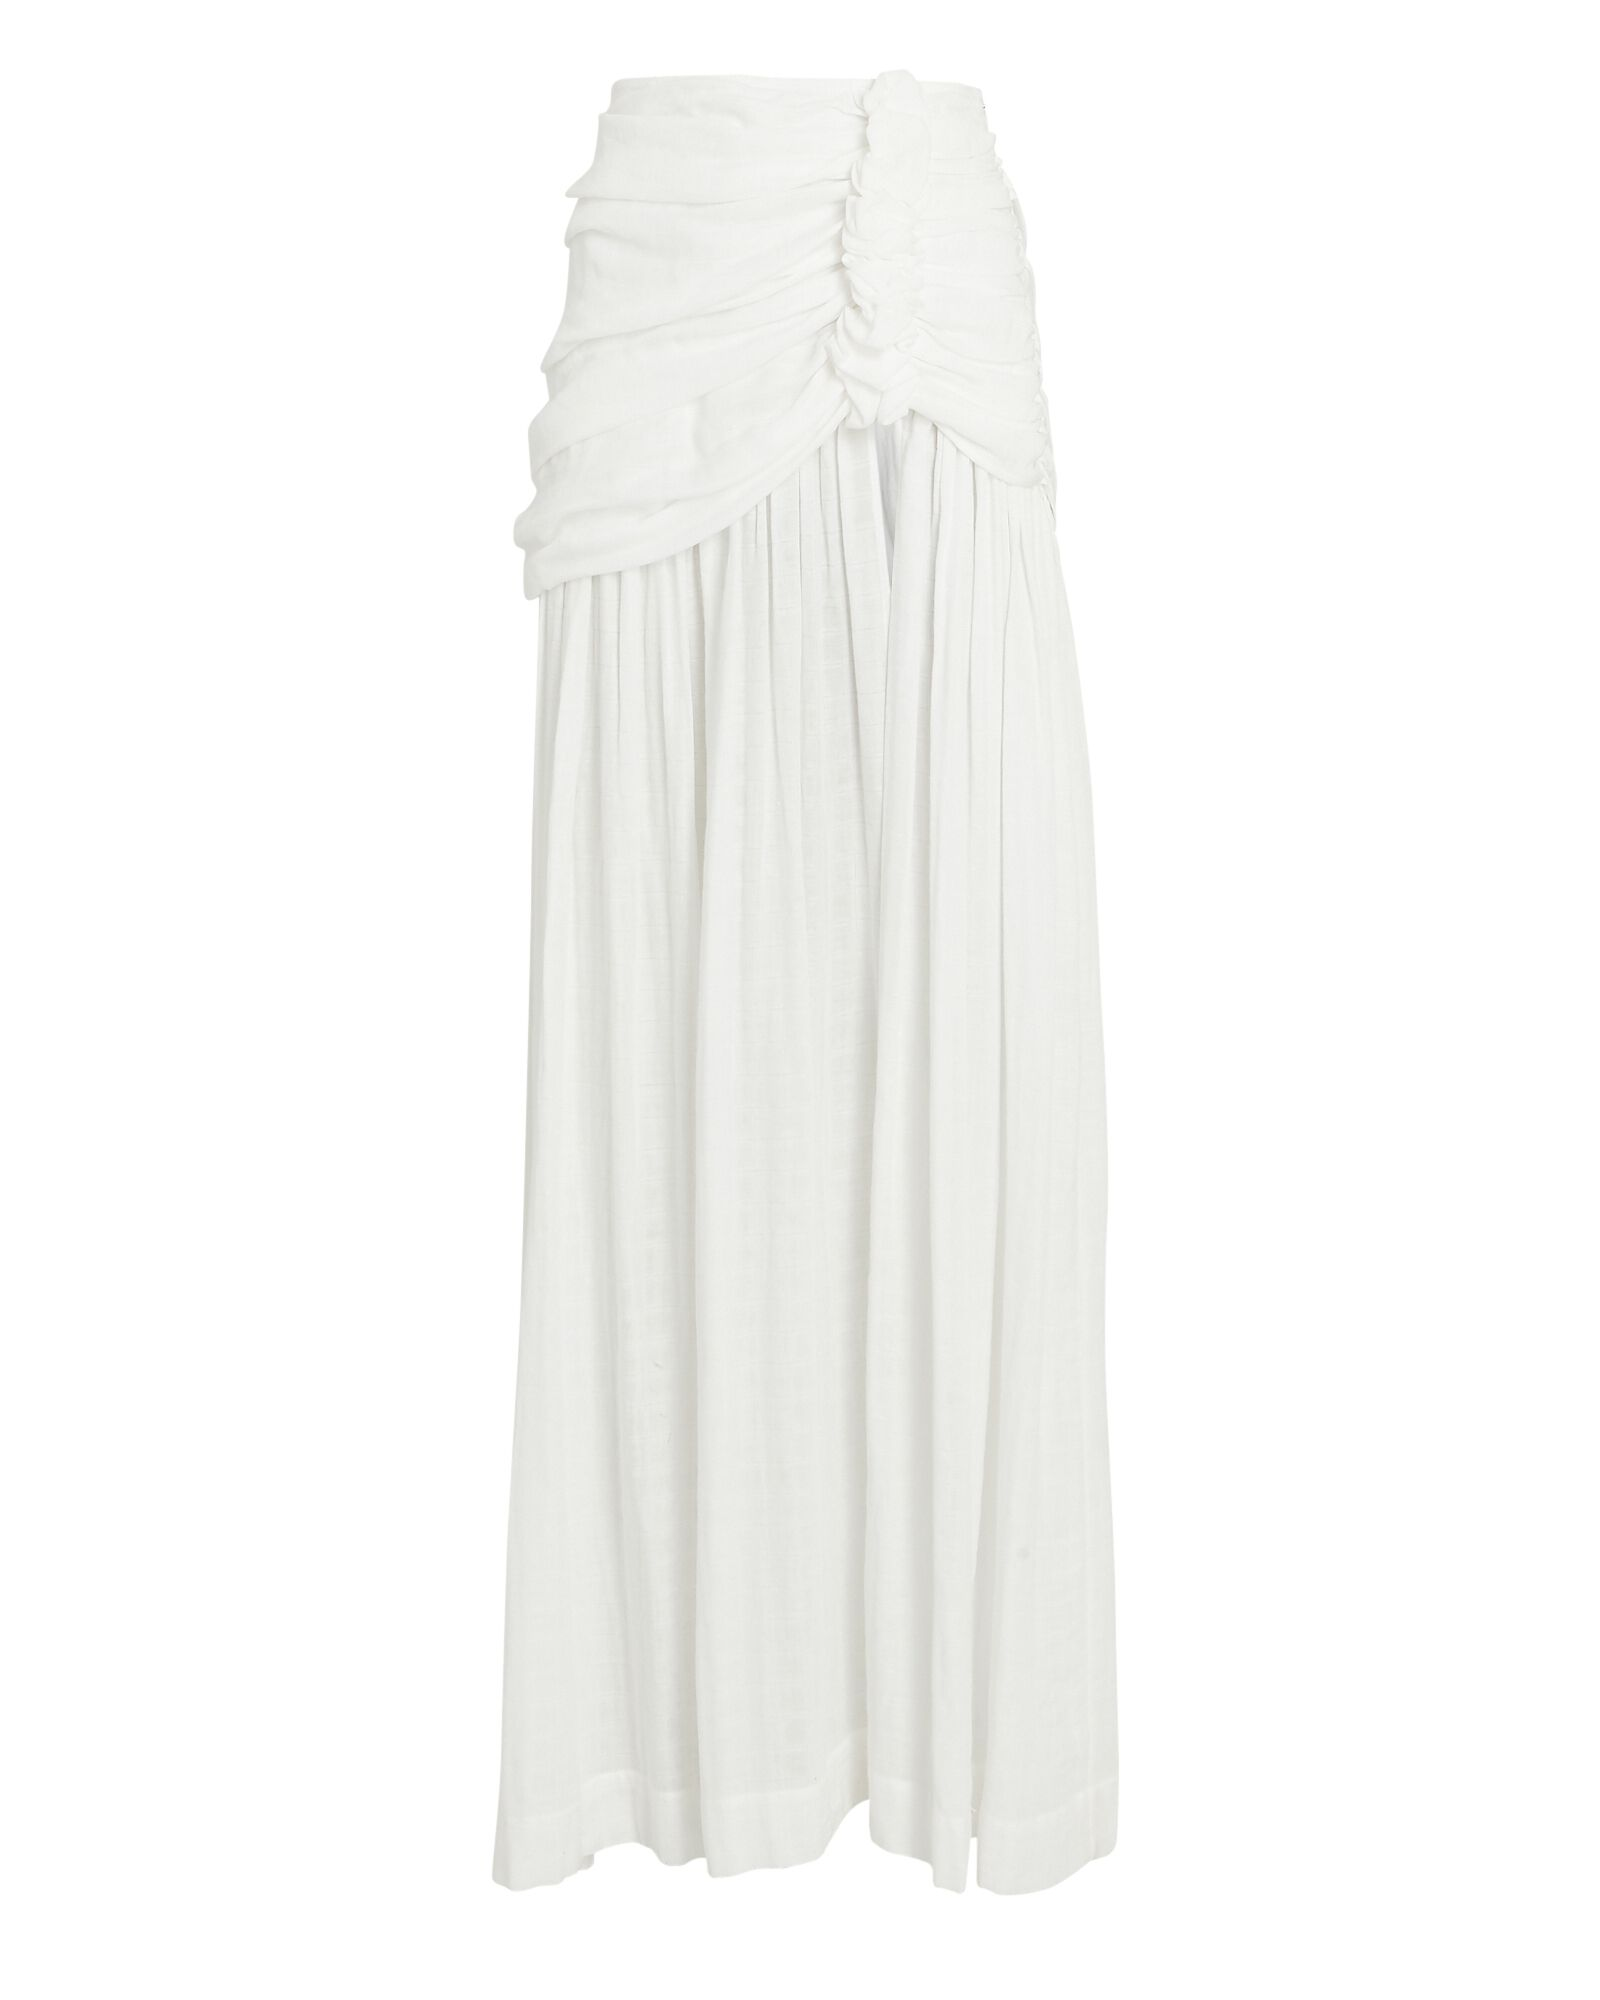 Bianca High Slit Maxi Skirt, WHITE, hi-res